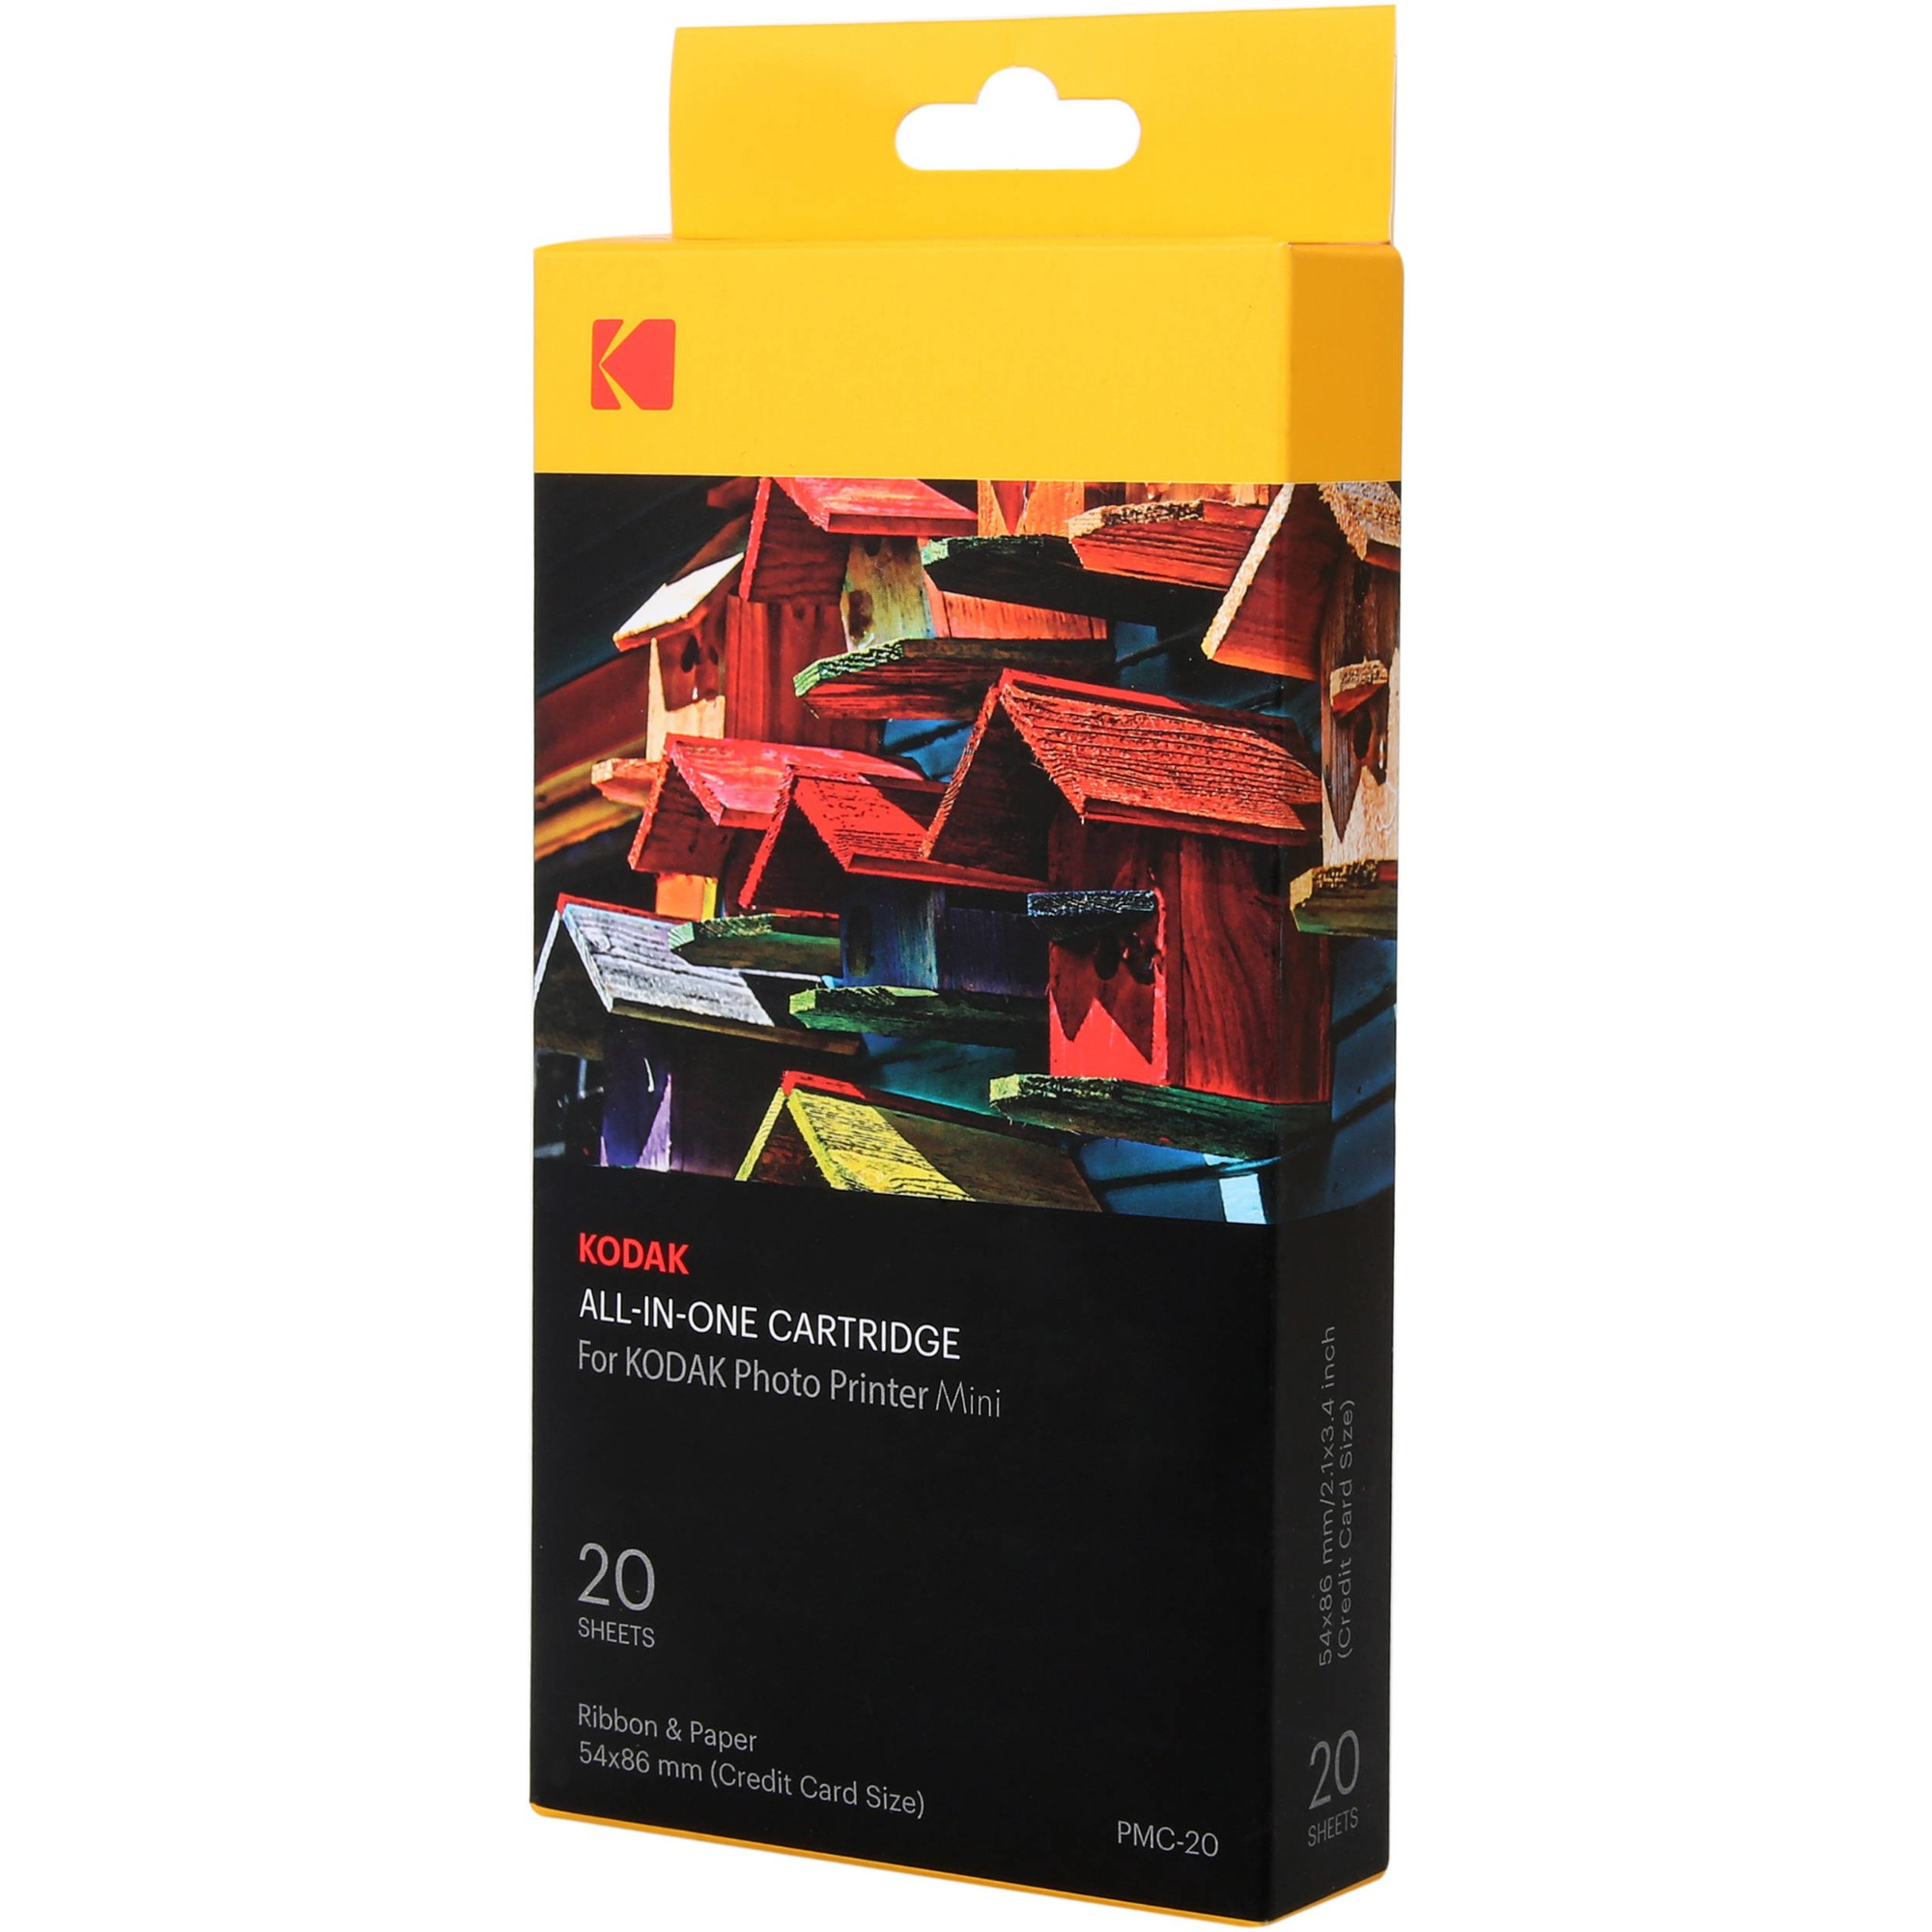 Kodak PMC-20 Photo cartridge, 20 pages, Pack qty 1